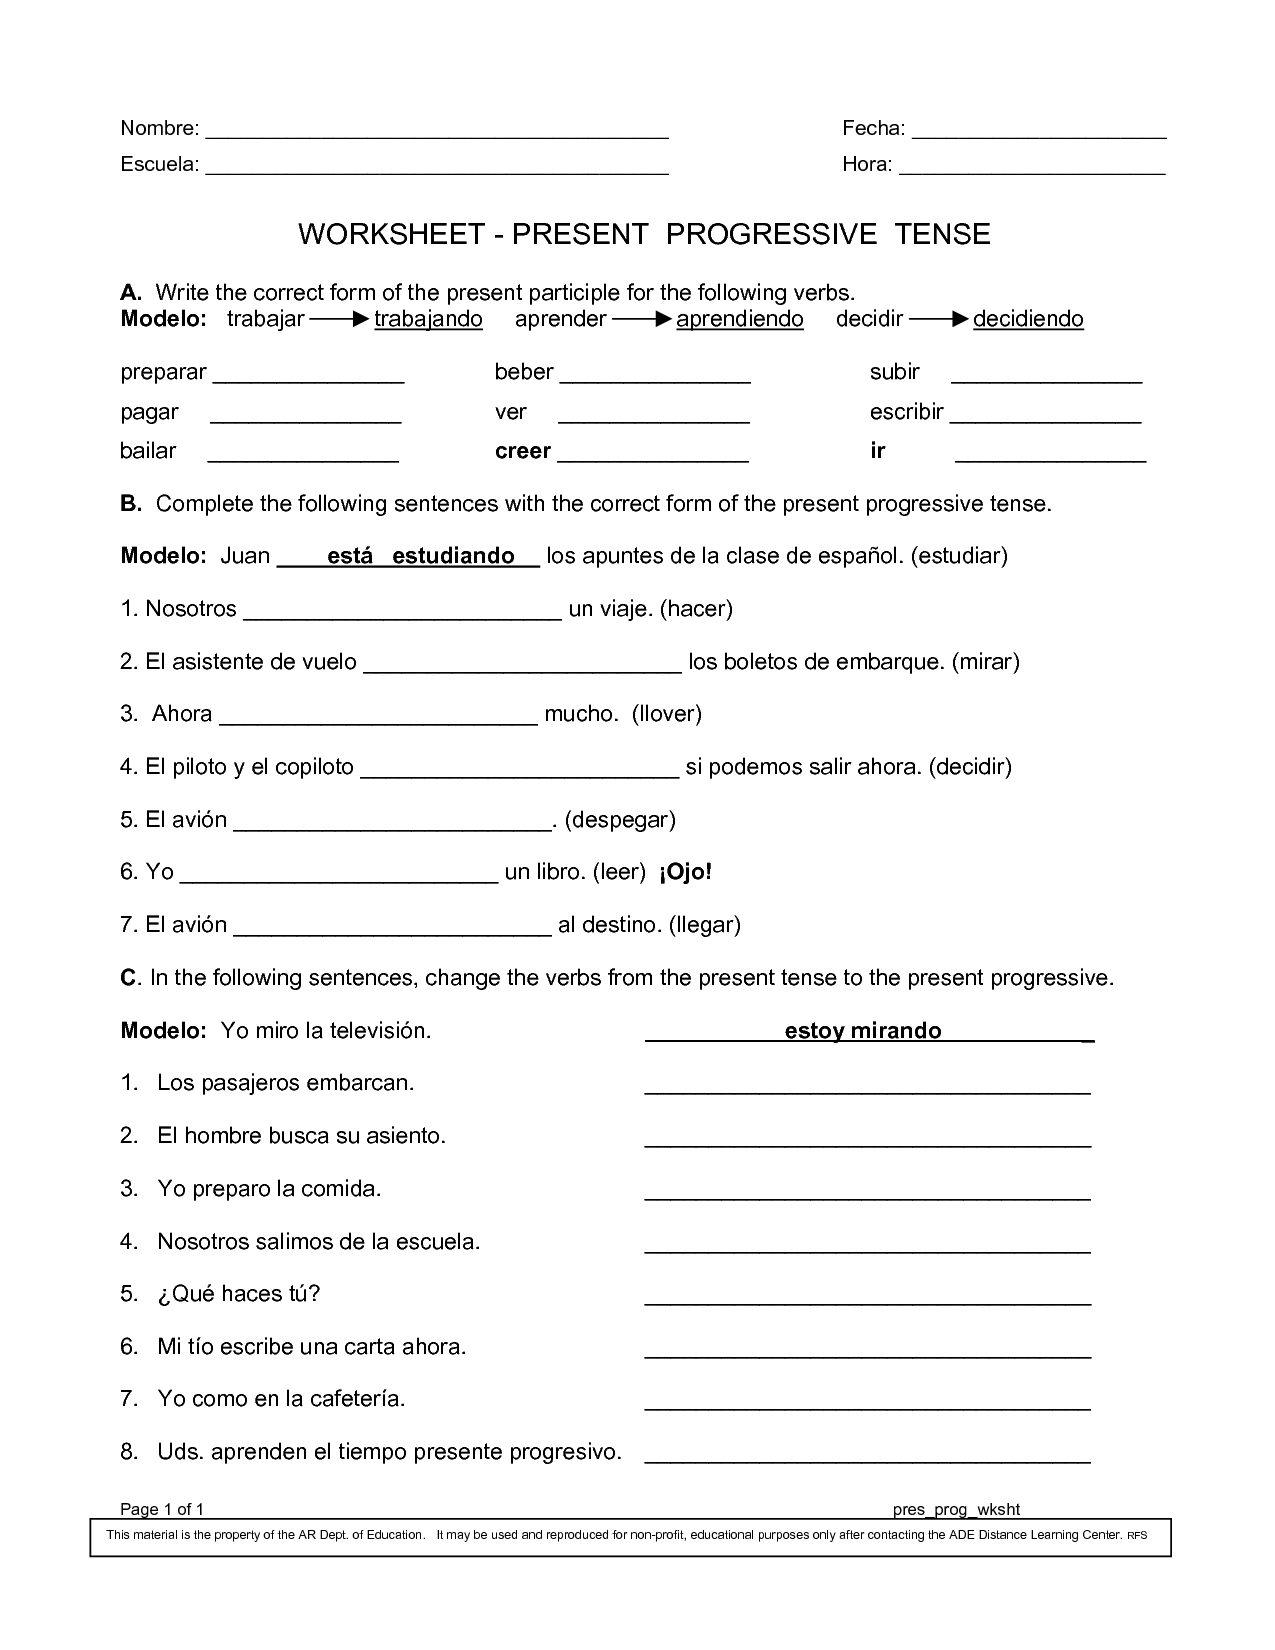 Worksheets Spanish Worksheet Answers spanish worksheets printables present progressive worksheet worksheet